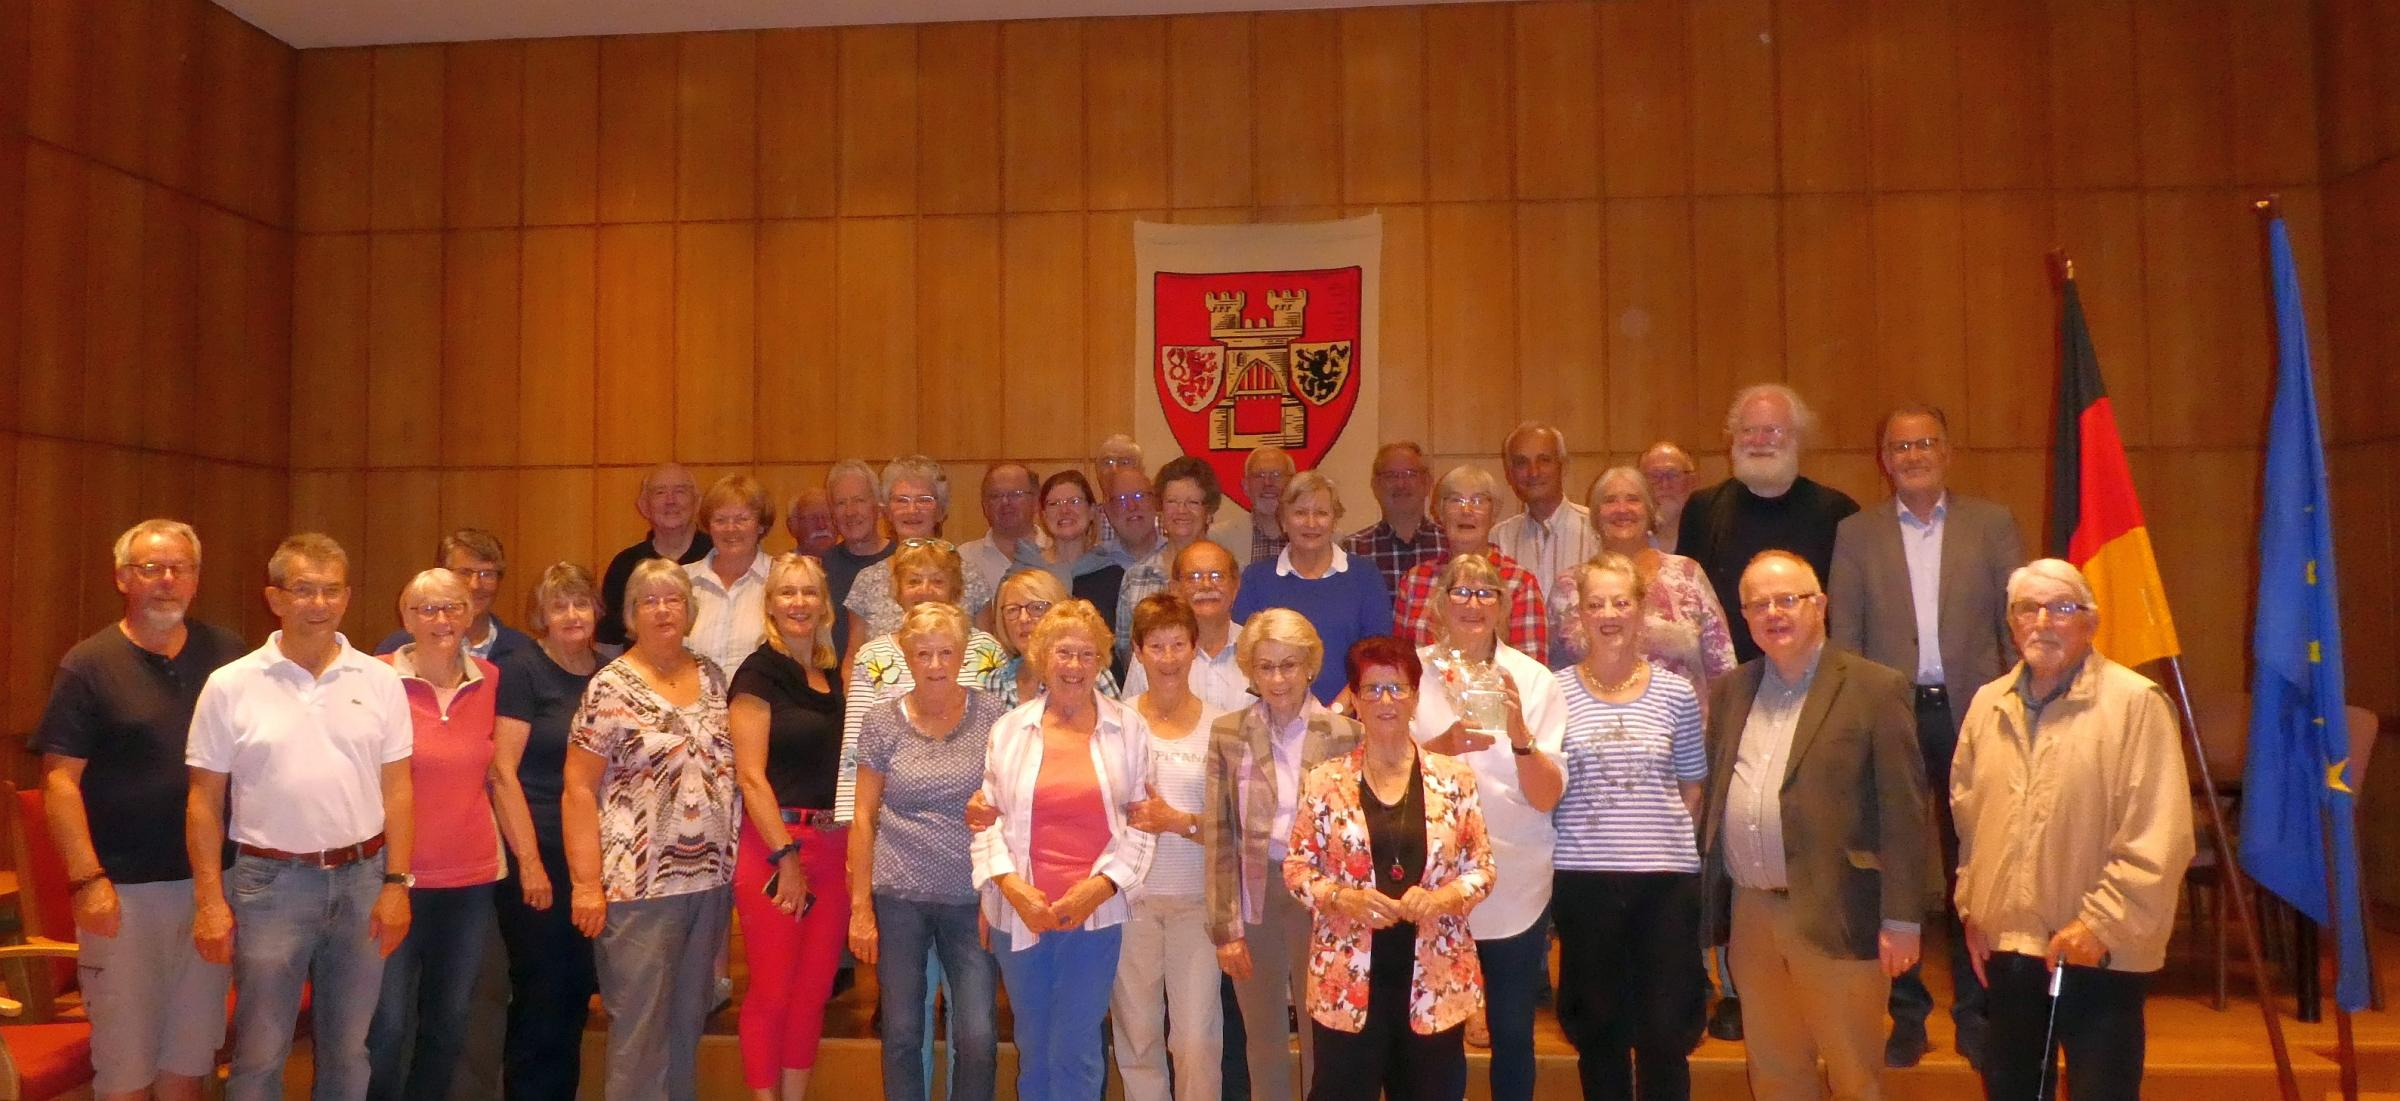 Overton Choral Society with Sangerkreis Euskirchsen and Uwe Friedl, mayor. Image: Overton Choral Society